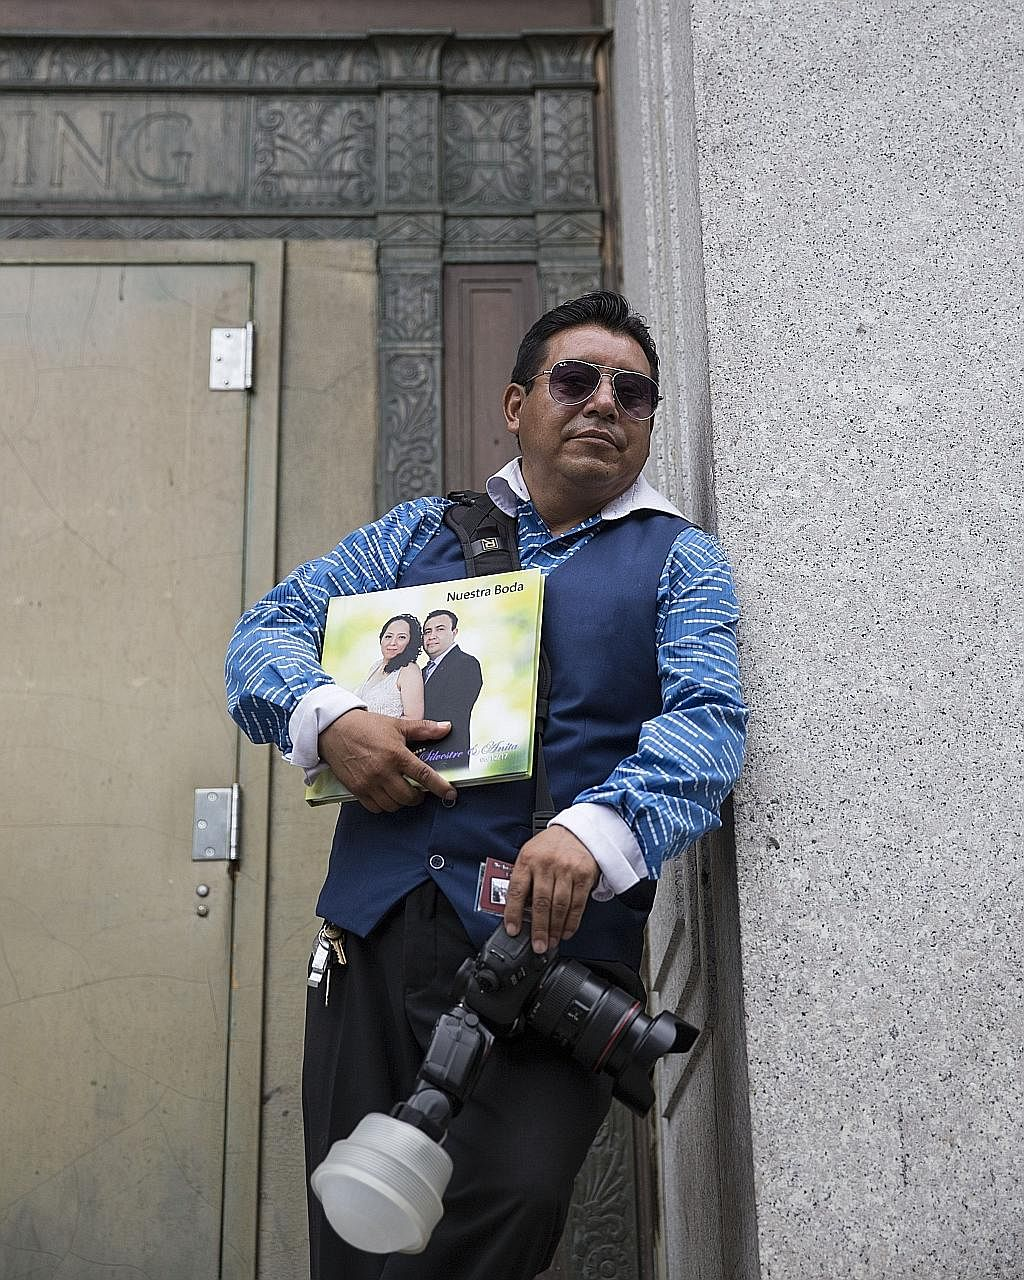 Serbian father-and-son team Nikola and Goran Veljic (above) and Ecuadorian Braulio Cuenca (below) offer photography services outside the City Clerk's Office in Manhattan.